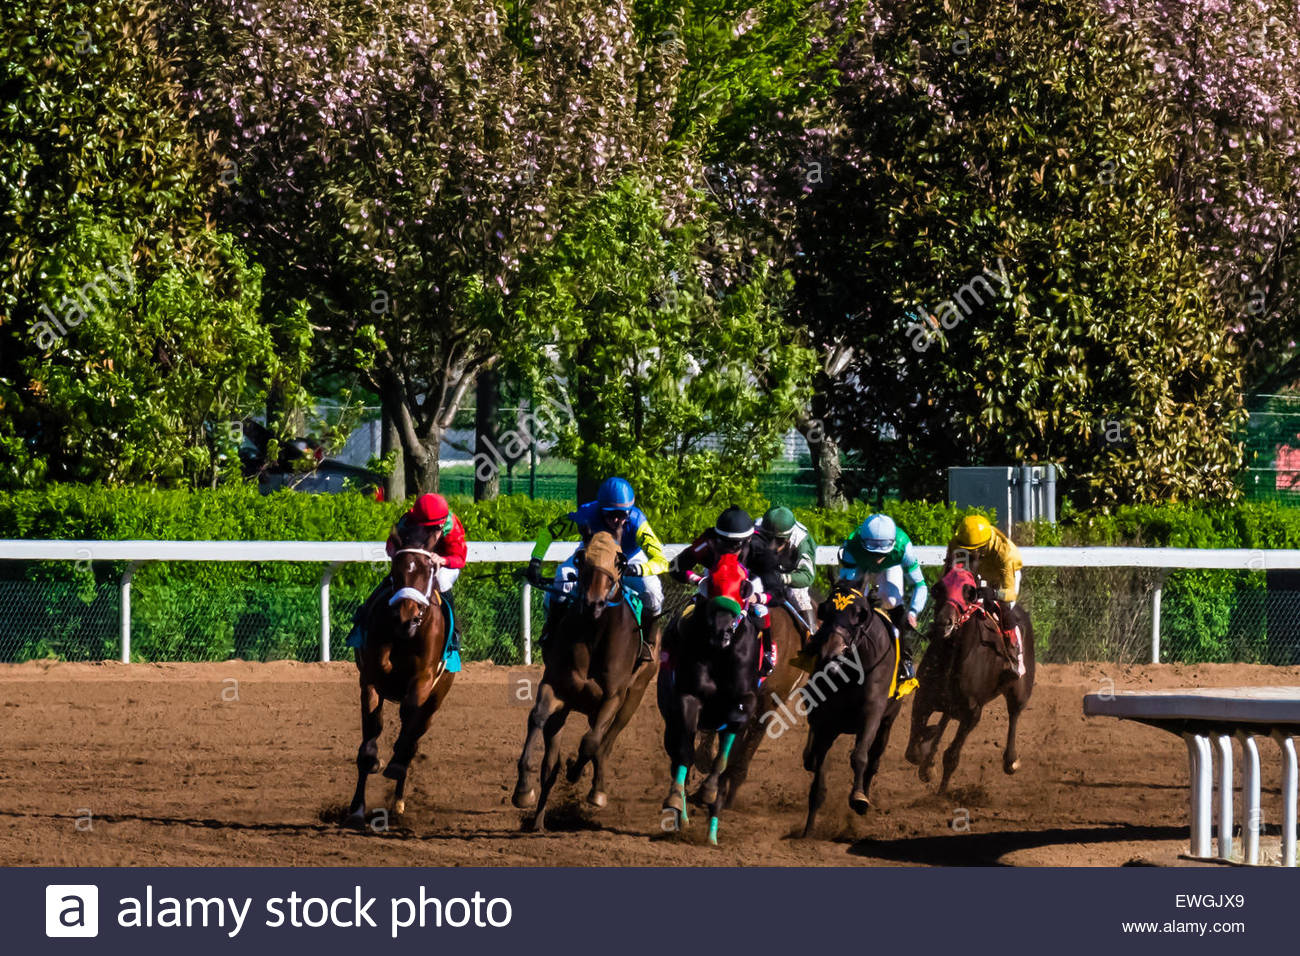 horse racing stock photos horse racing stock images alamy. Black Bedroom Furniture Sets. Home Design Ideas